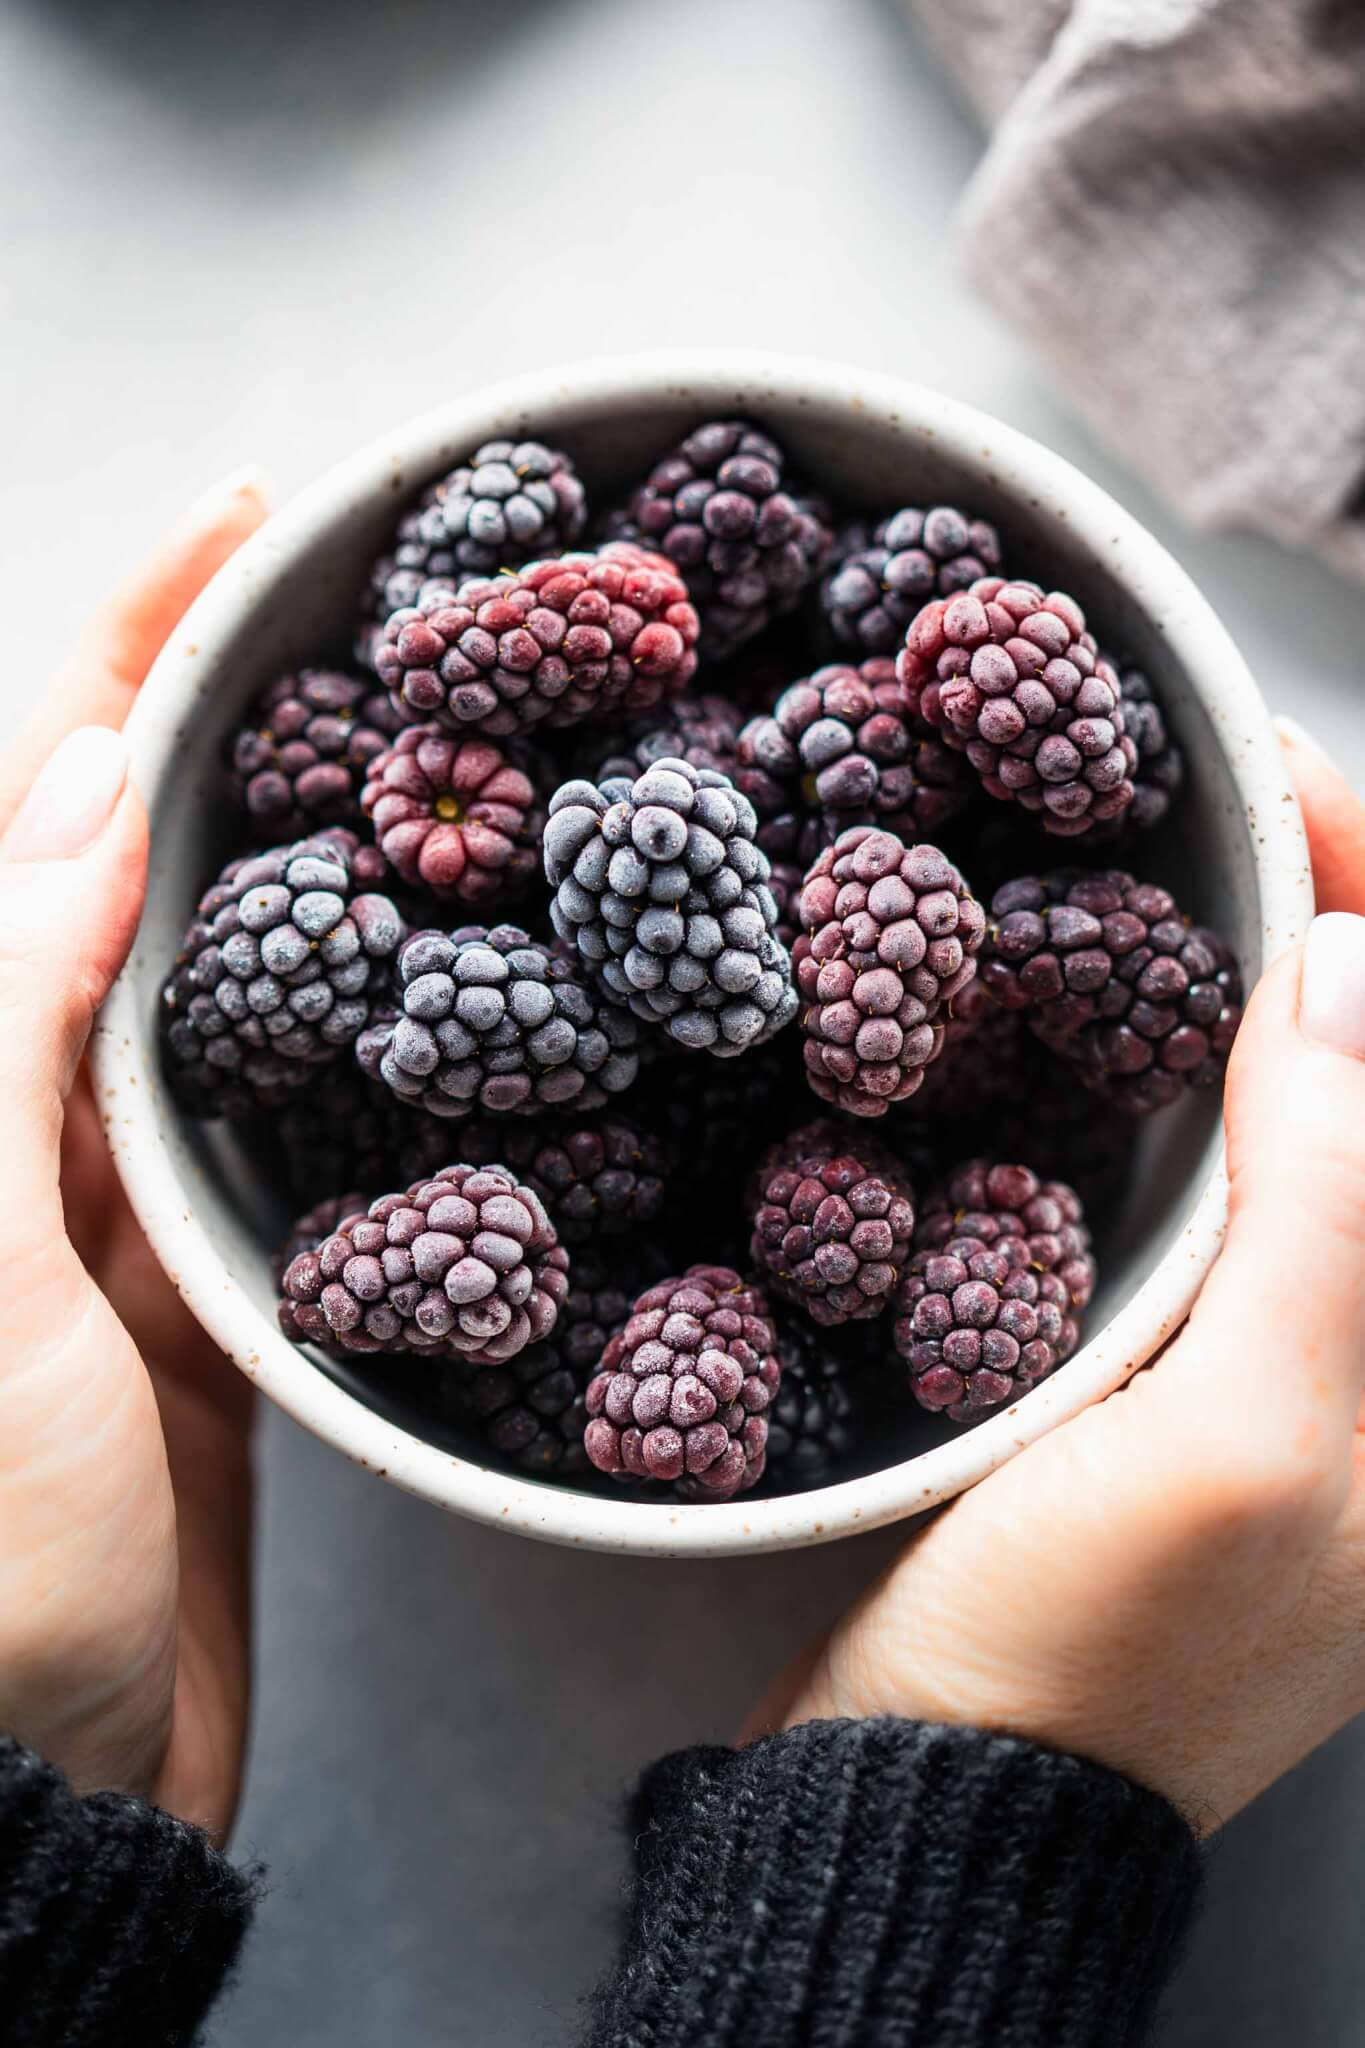 Hands holding bowl of frozen blackberries.